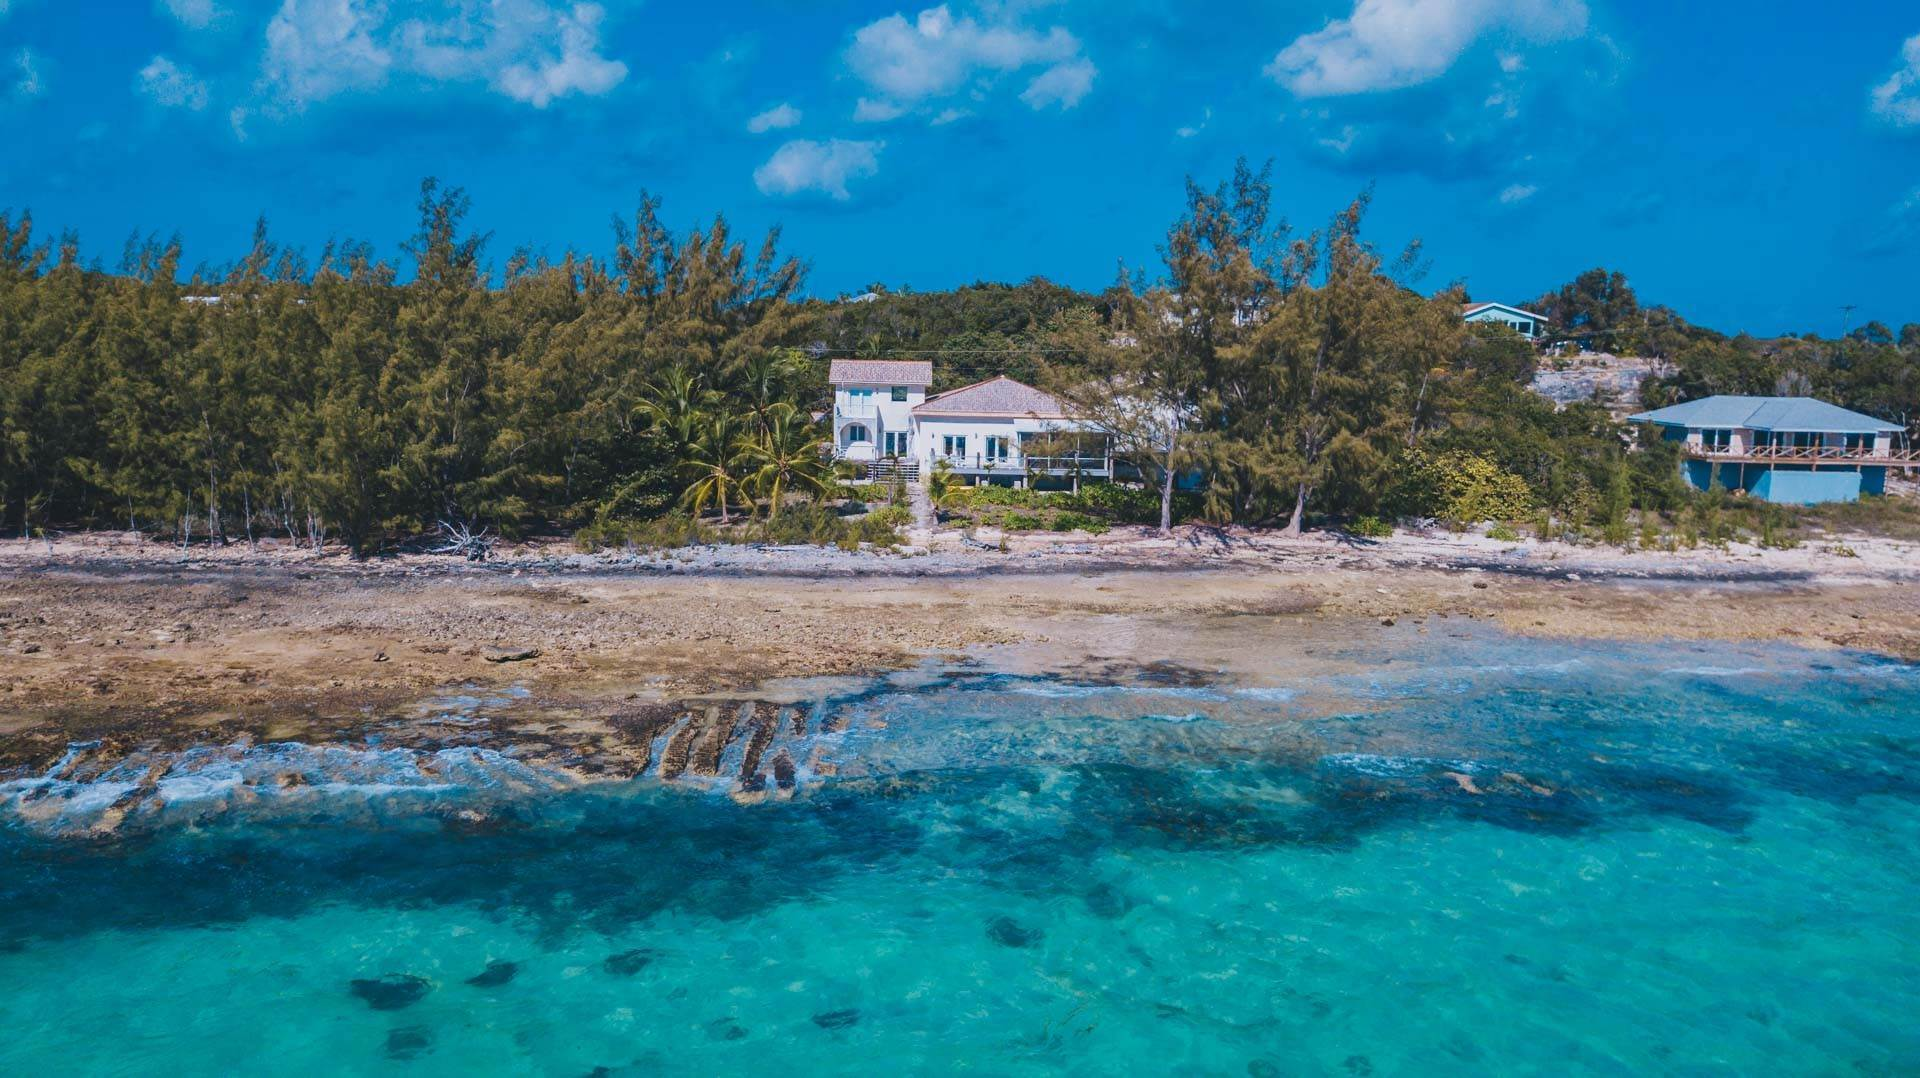 Single Family Homes por un Venta en Superb Waterfront Investment Opportunity - Sunset Villa Palmetto Shores, Eleuthera - MLS 41082 Palmetto Point, Eleuthera, Bahamas